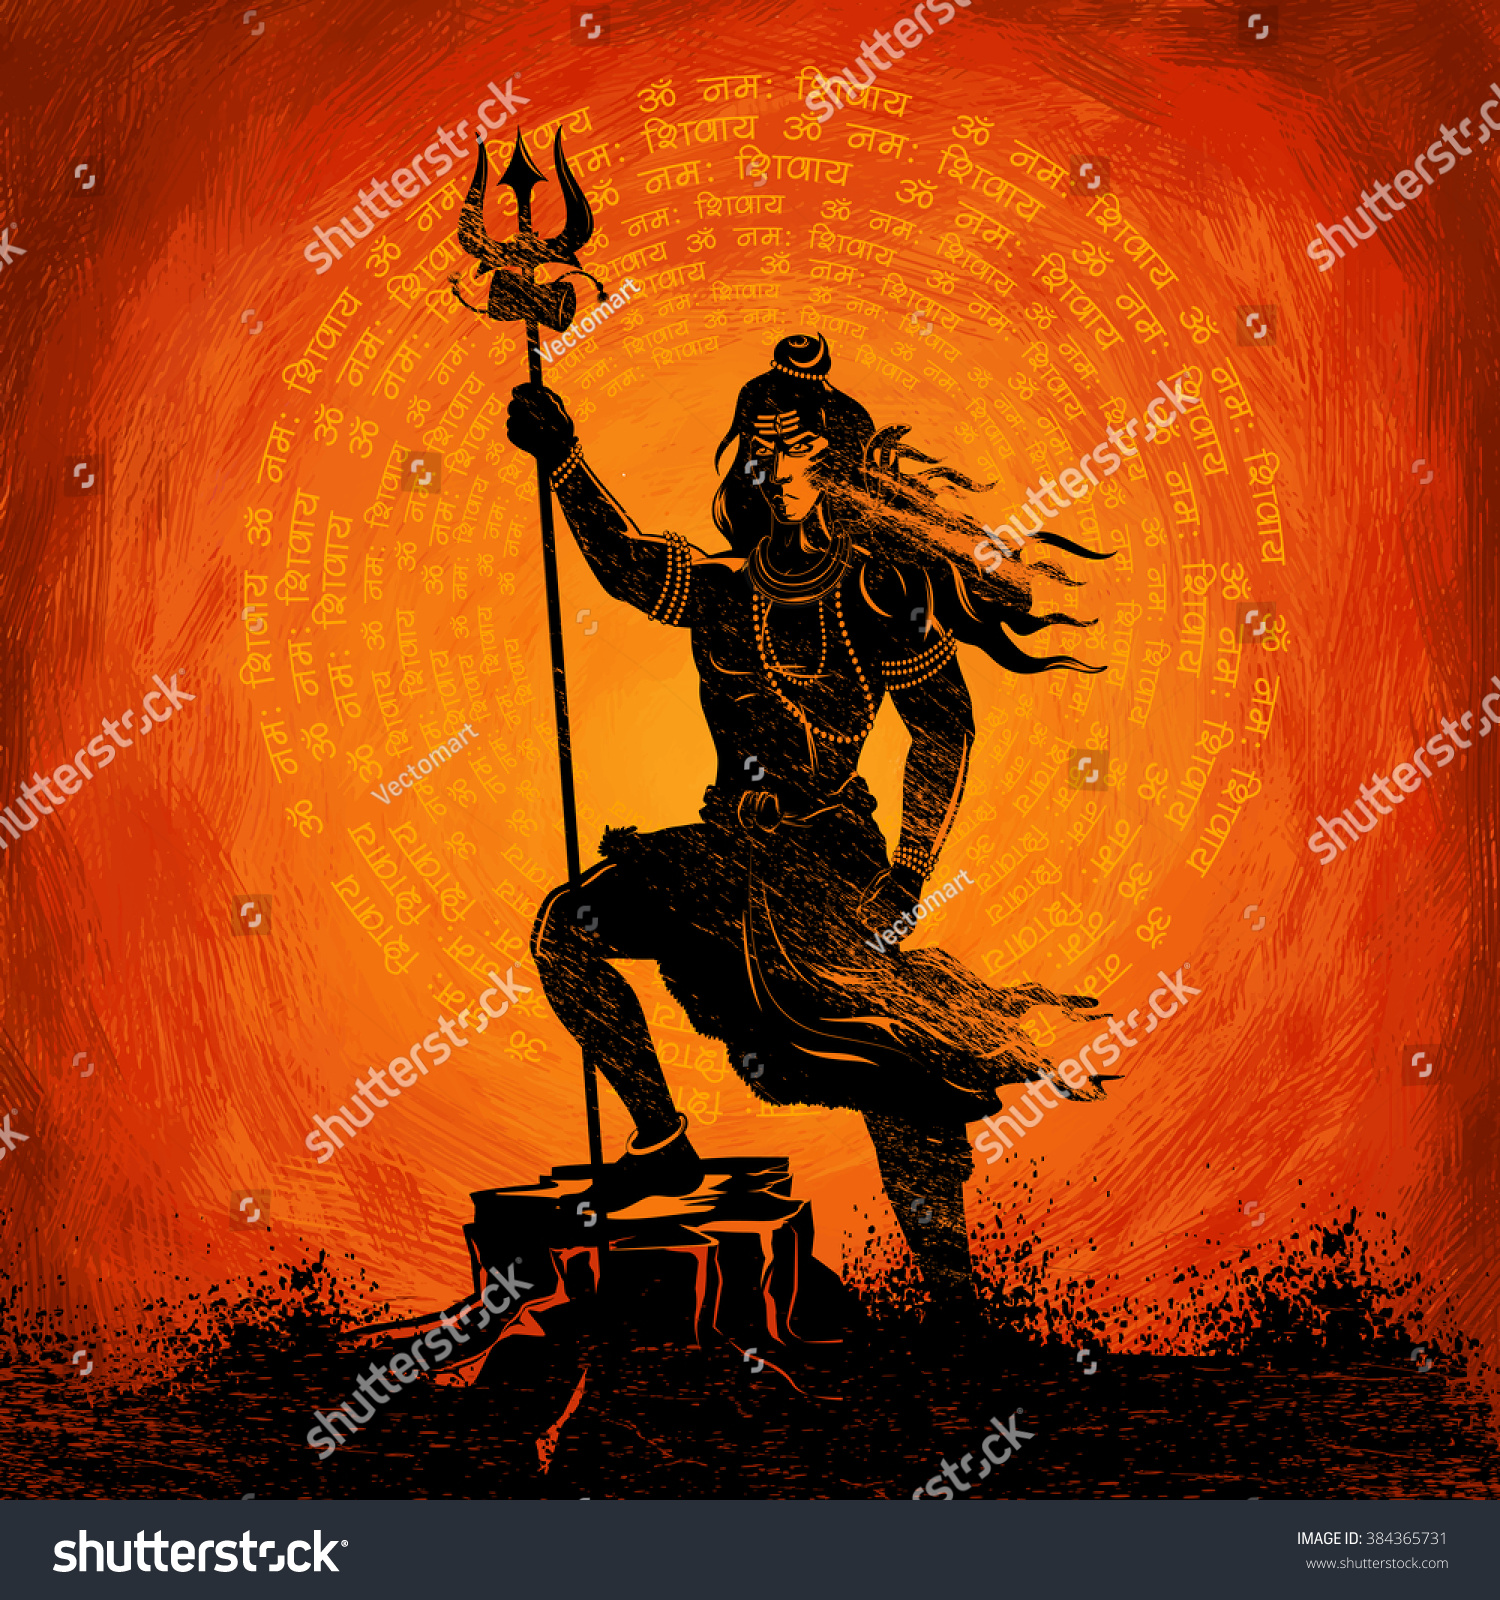 Durga Puja 3d Wallpaper Illustration Lord Shiva Indian God Hindu Stock Vector